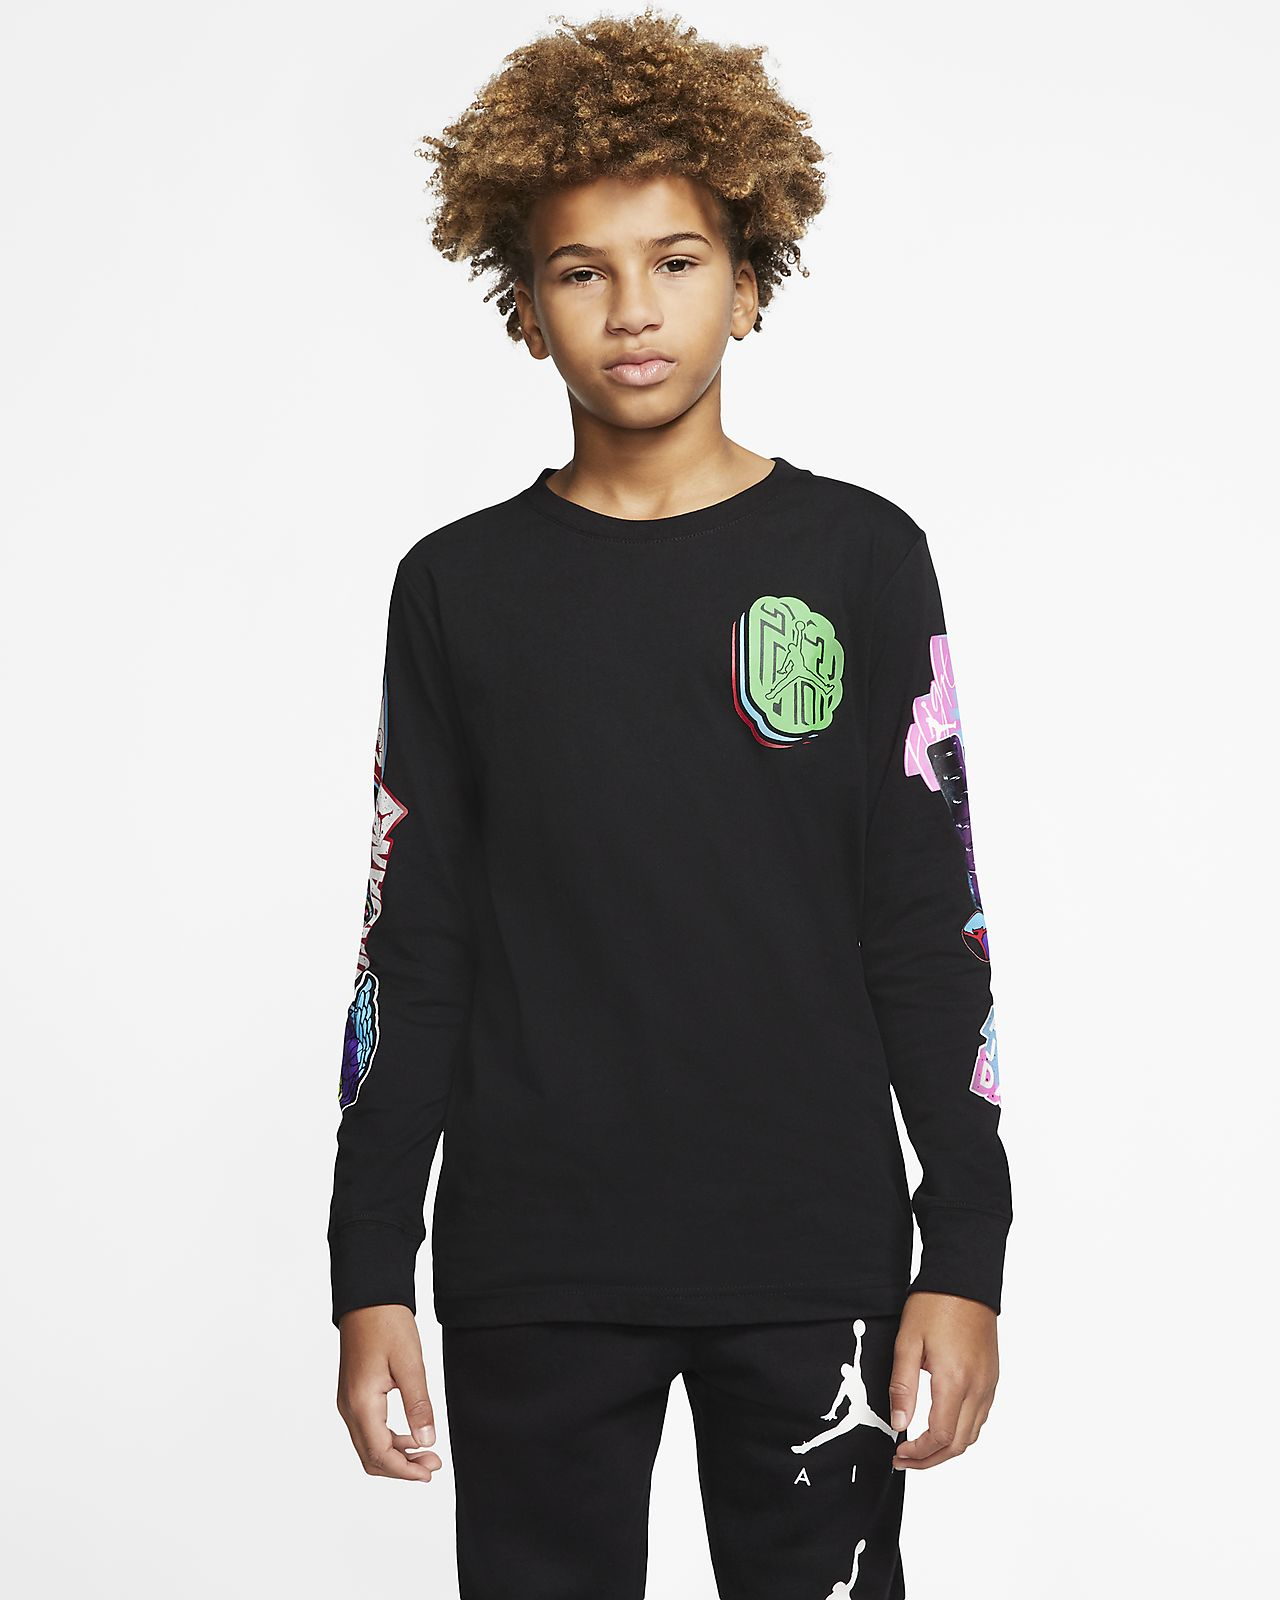 Air Jordan Big Kids' (Boys') Long-Sleeve T-Shirt